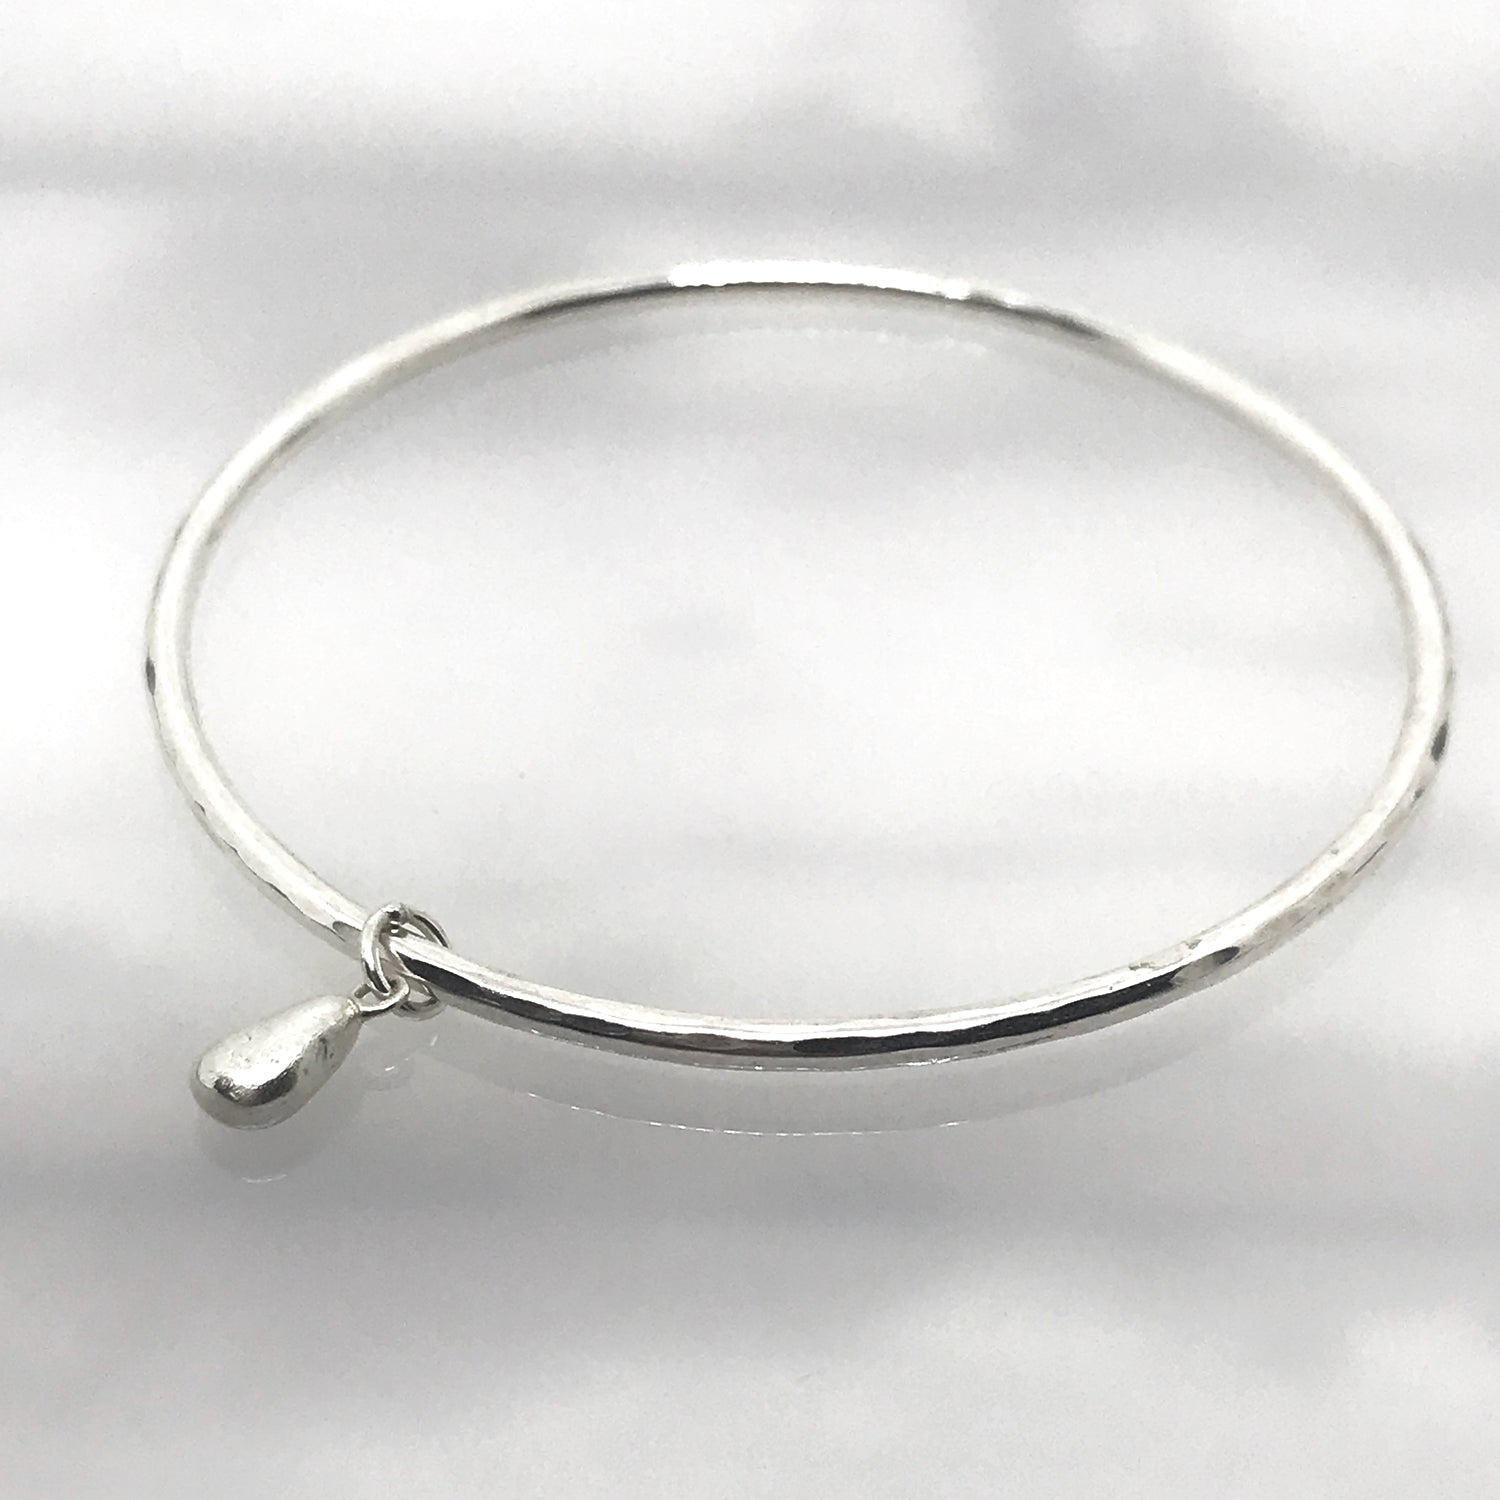 Silver Bangle with Solid Silver Seaglass Charm - kriket broadhurst jewellery